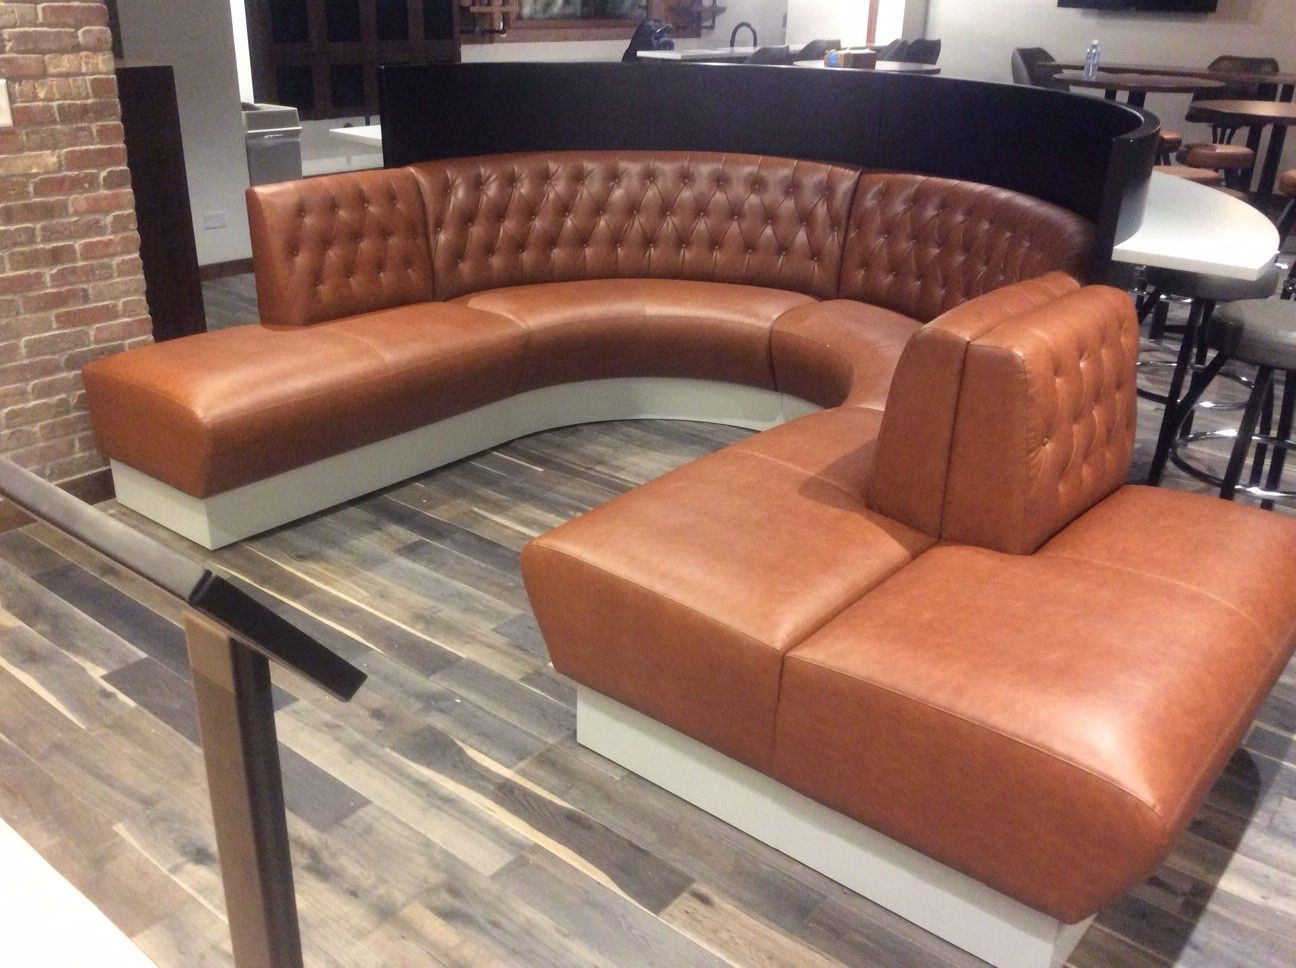 Banquette Seating - Hampton | Banquette seating, Banquette ...